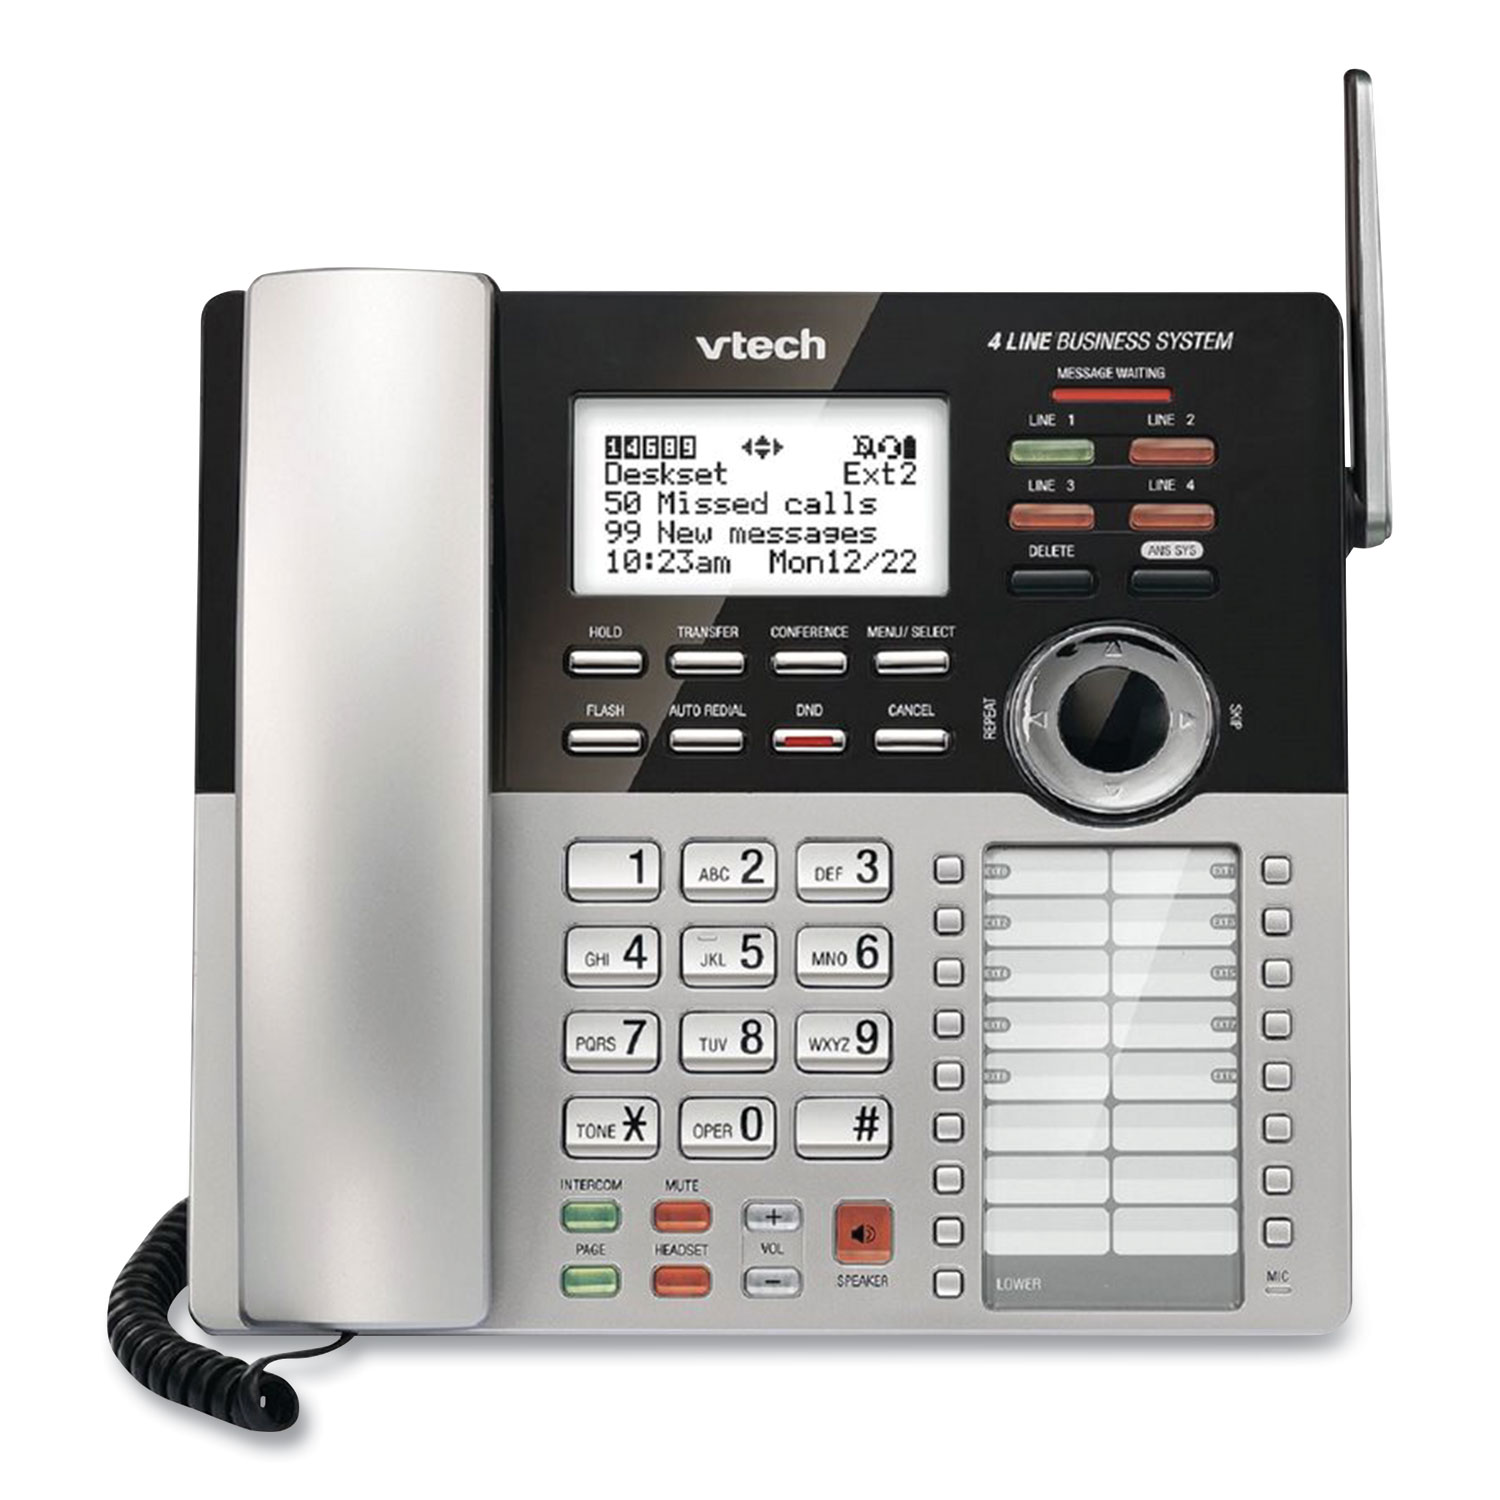 Vtech® CM18245 Four-Line Business System Extension Deskset For Ose With Vtech CM18445